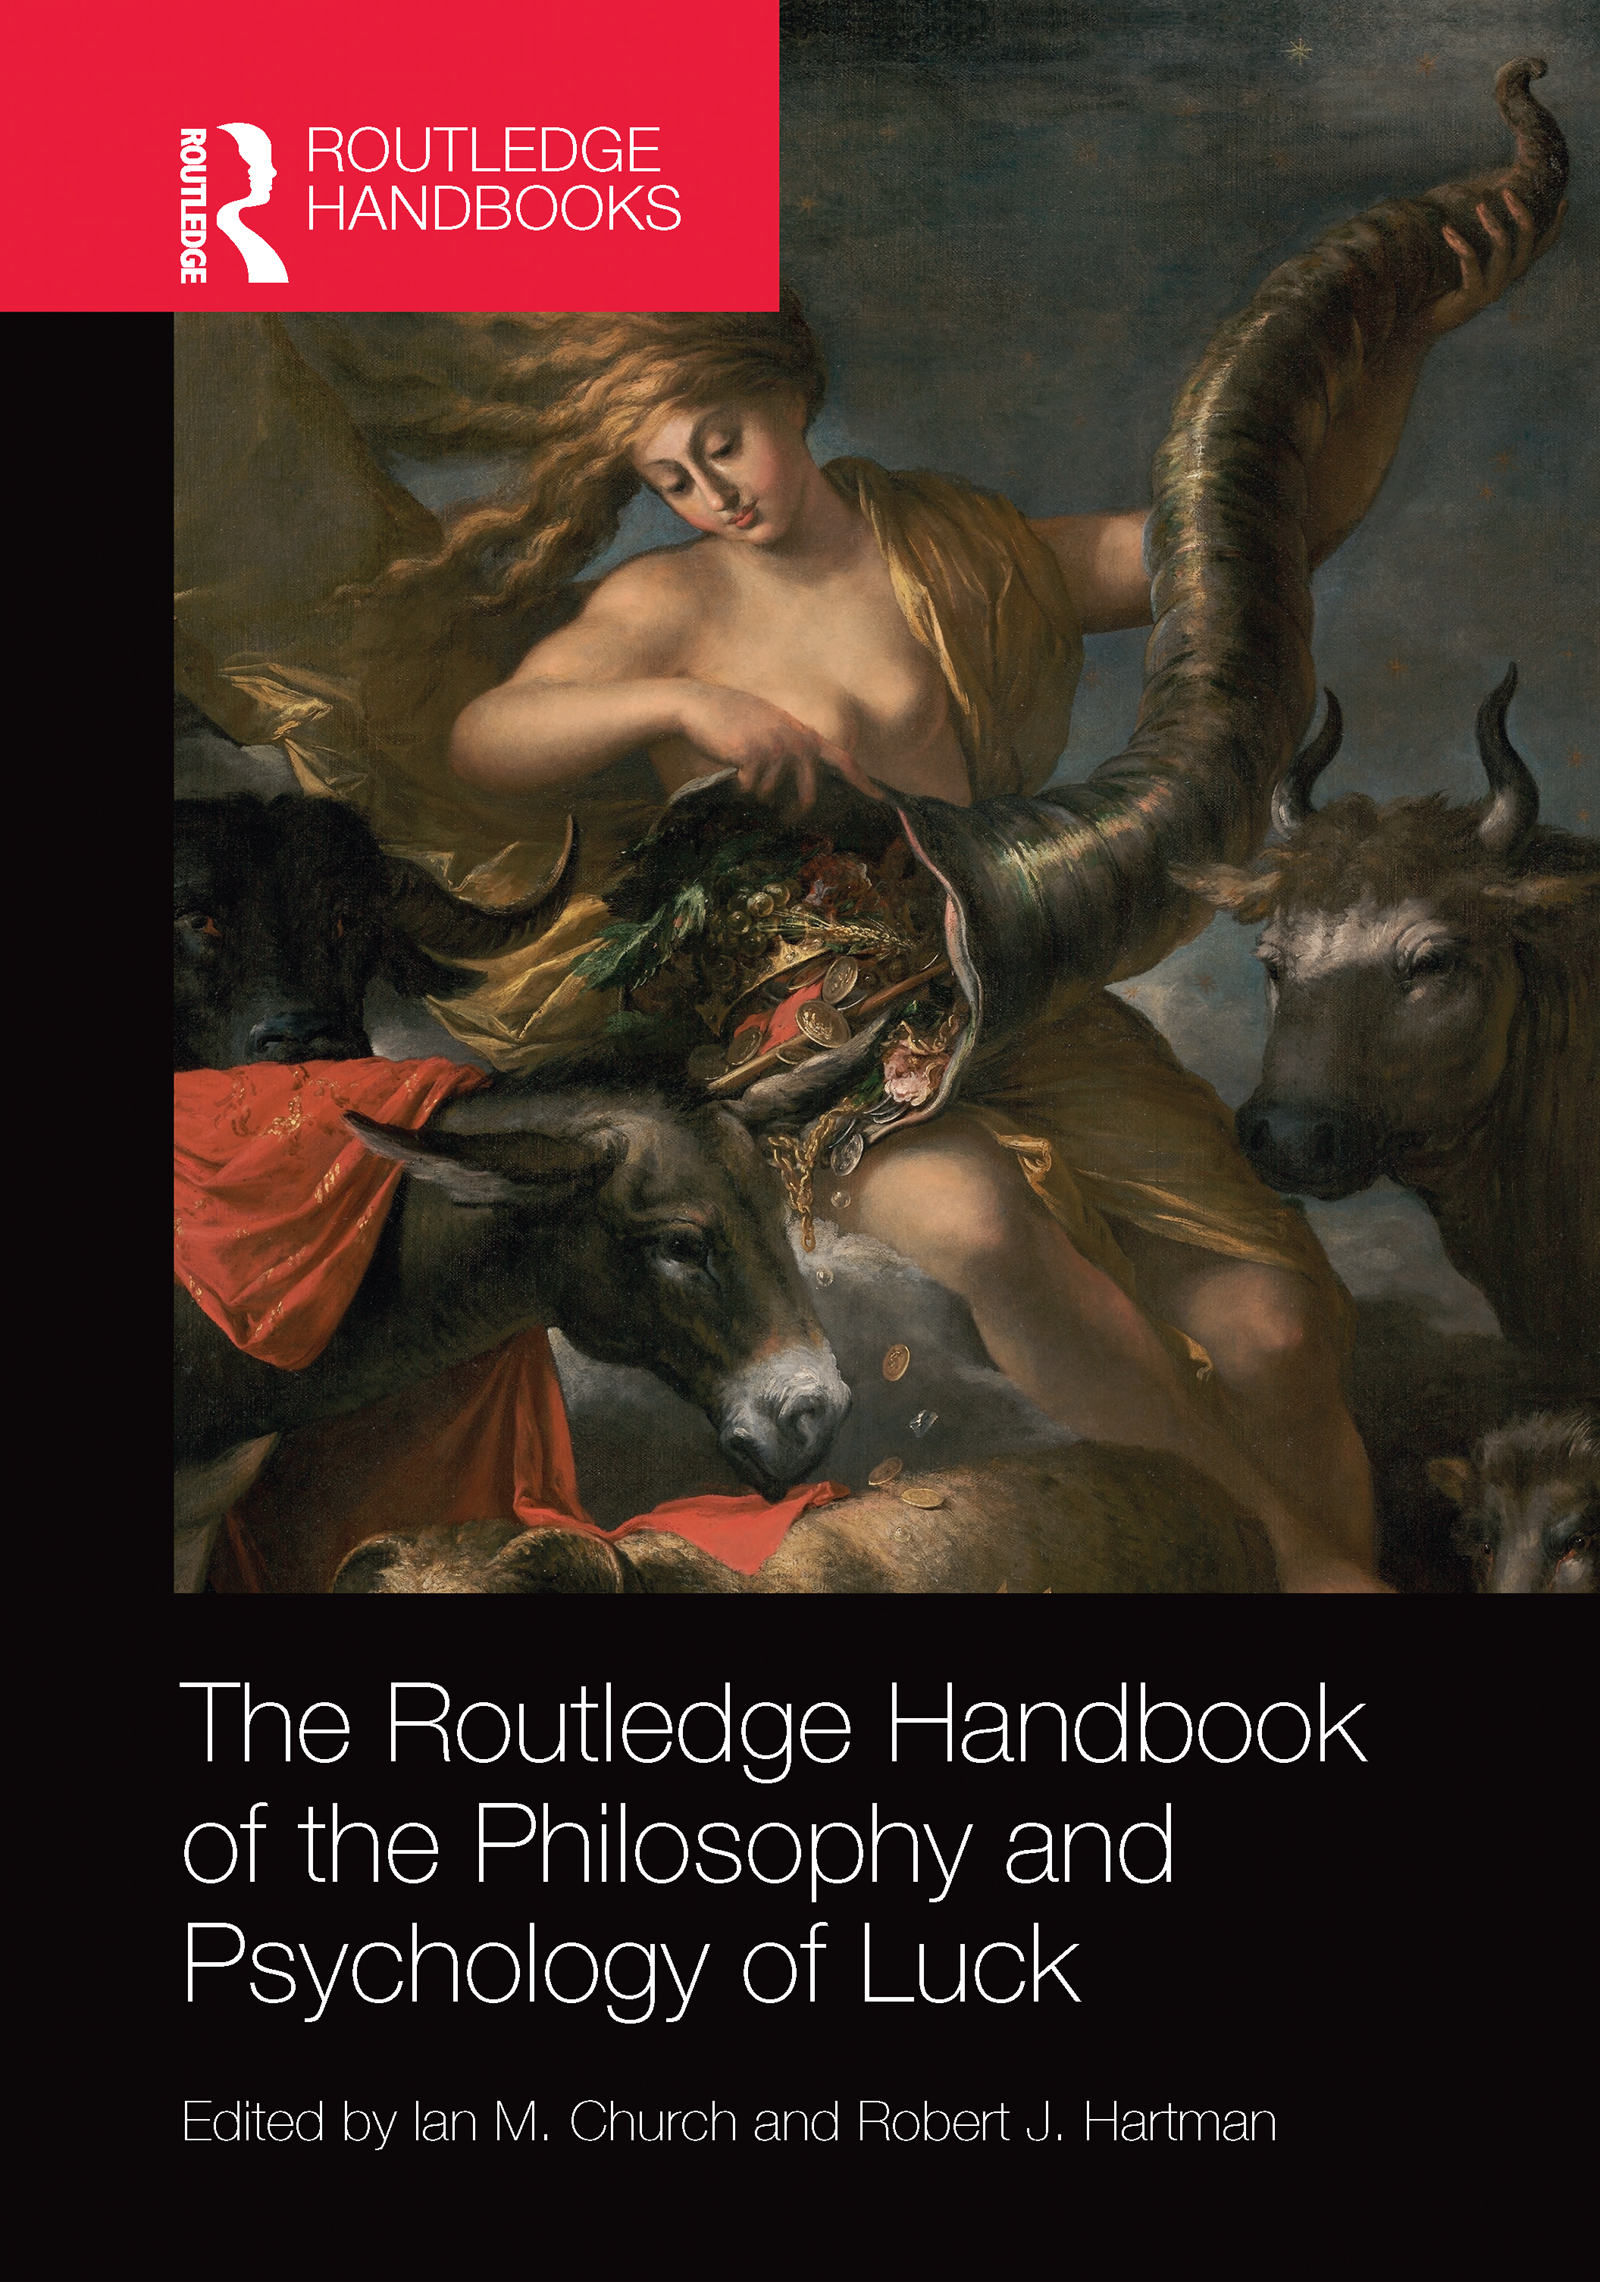 The Routledge Handbook of the Philosophy and Psychology of Luck